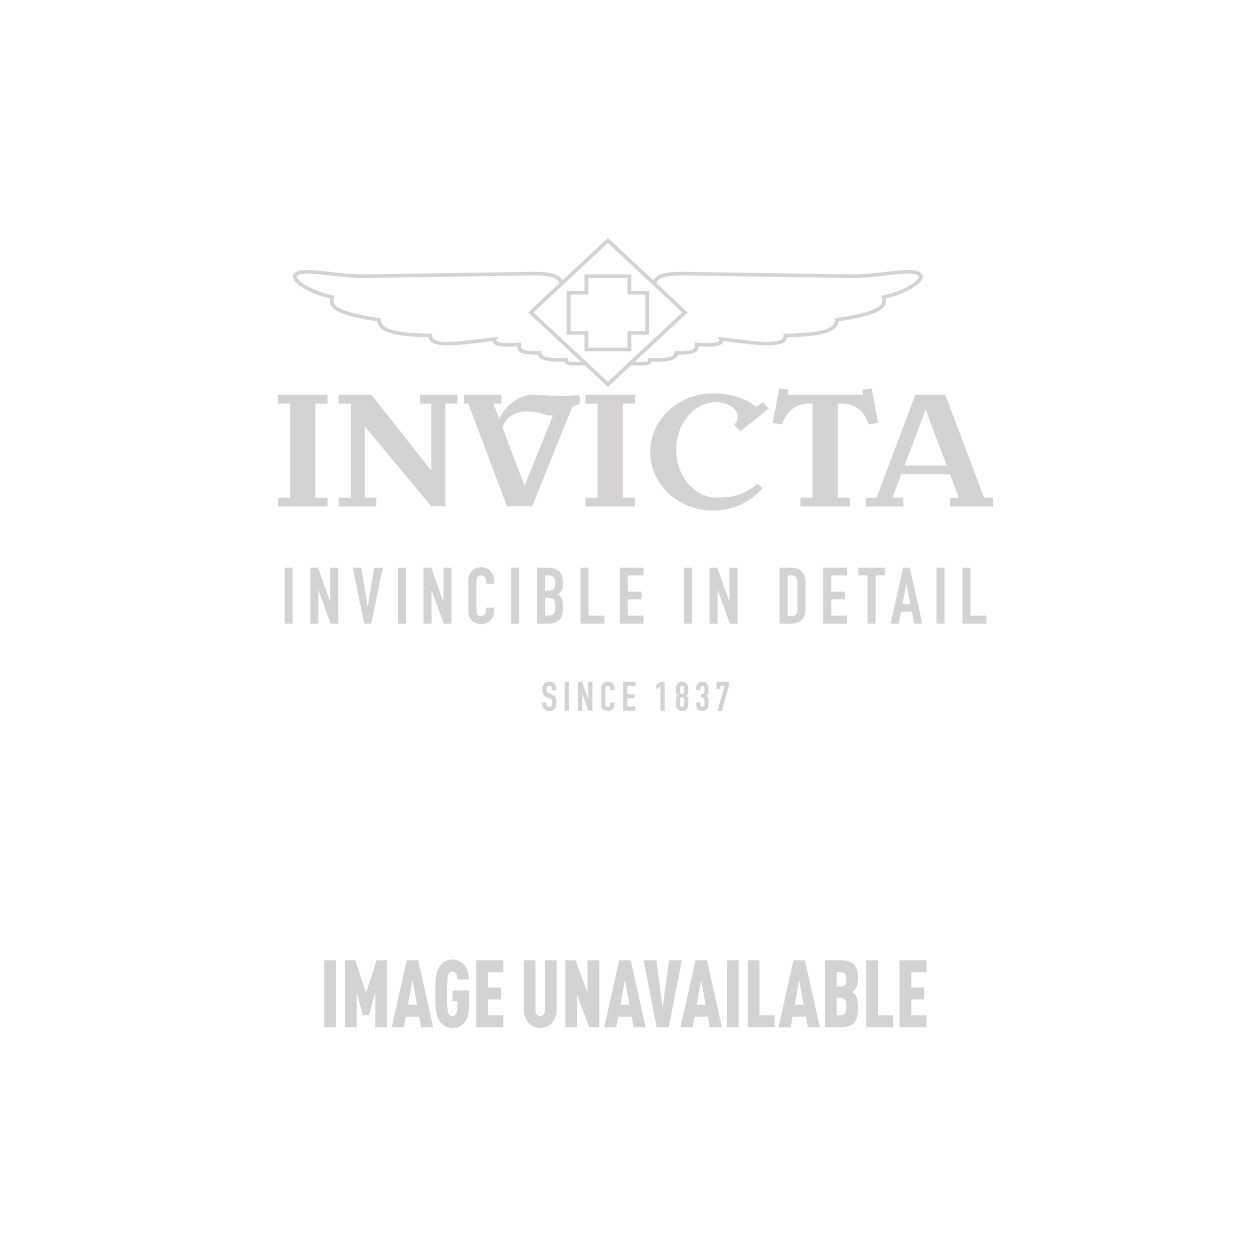 Invicta Vintage Quartz Watch - Stainless Steel case Stainless Steel band - Model 14854